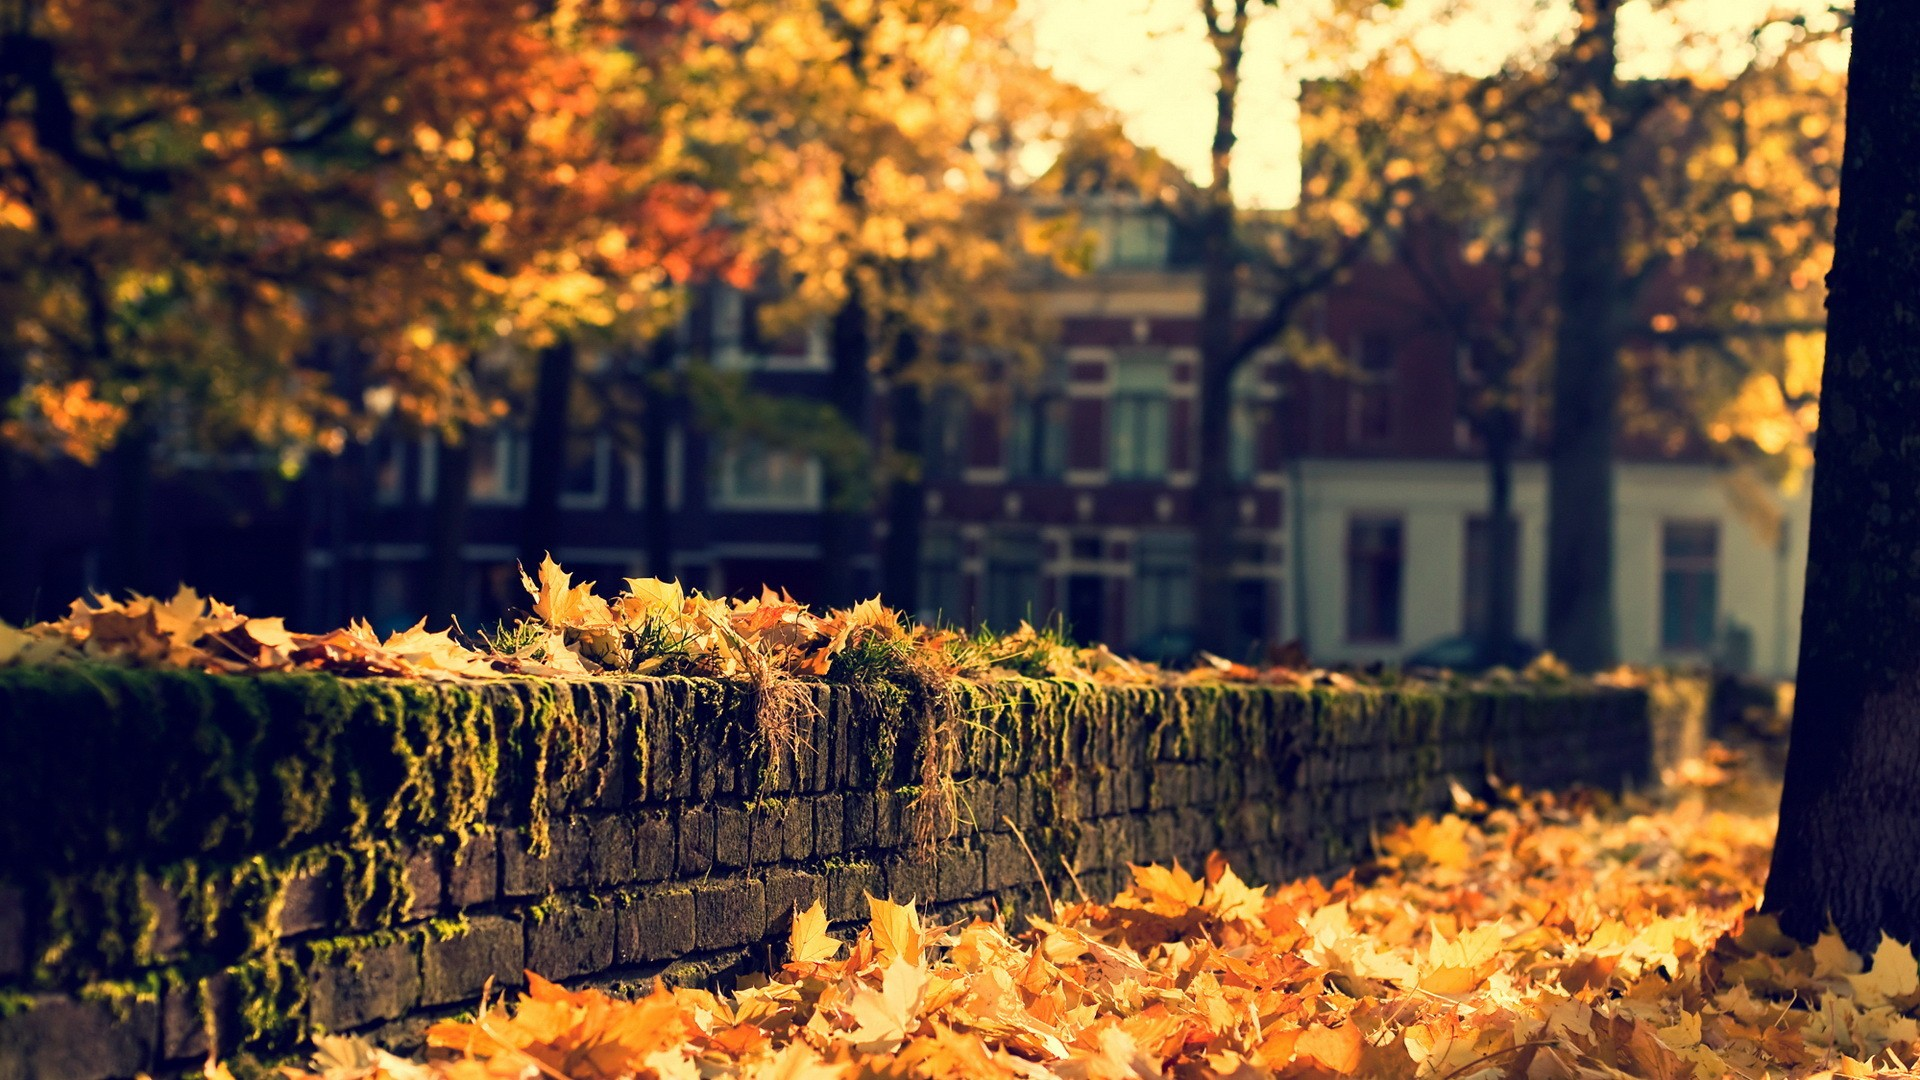 Nature Leaves Autumn Fall Seasons Trees Wall Stone Architecture Buildings Houses Wallpaper